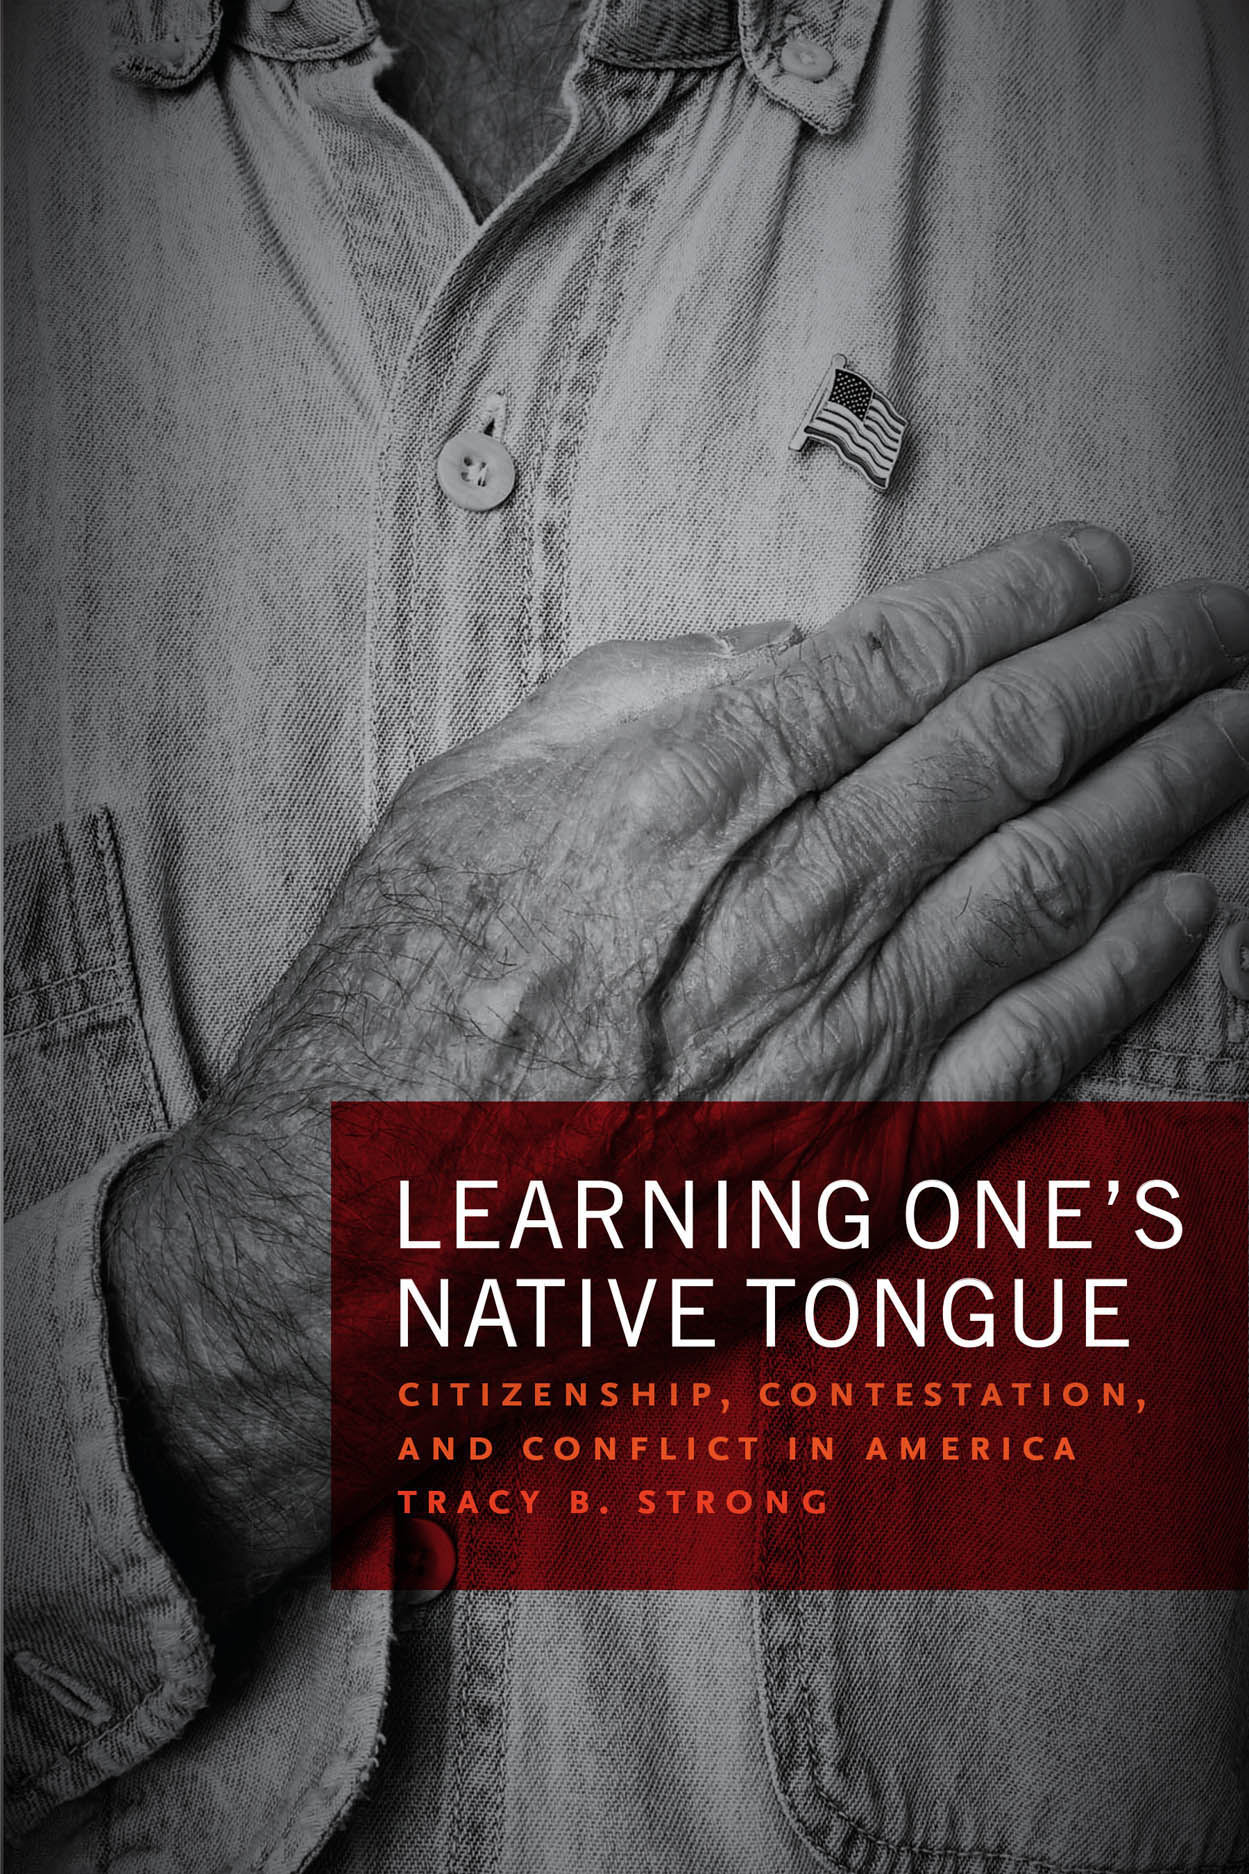 Learning One's Native Tongue: Citizenship, Contestation, and Conflict in America